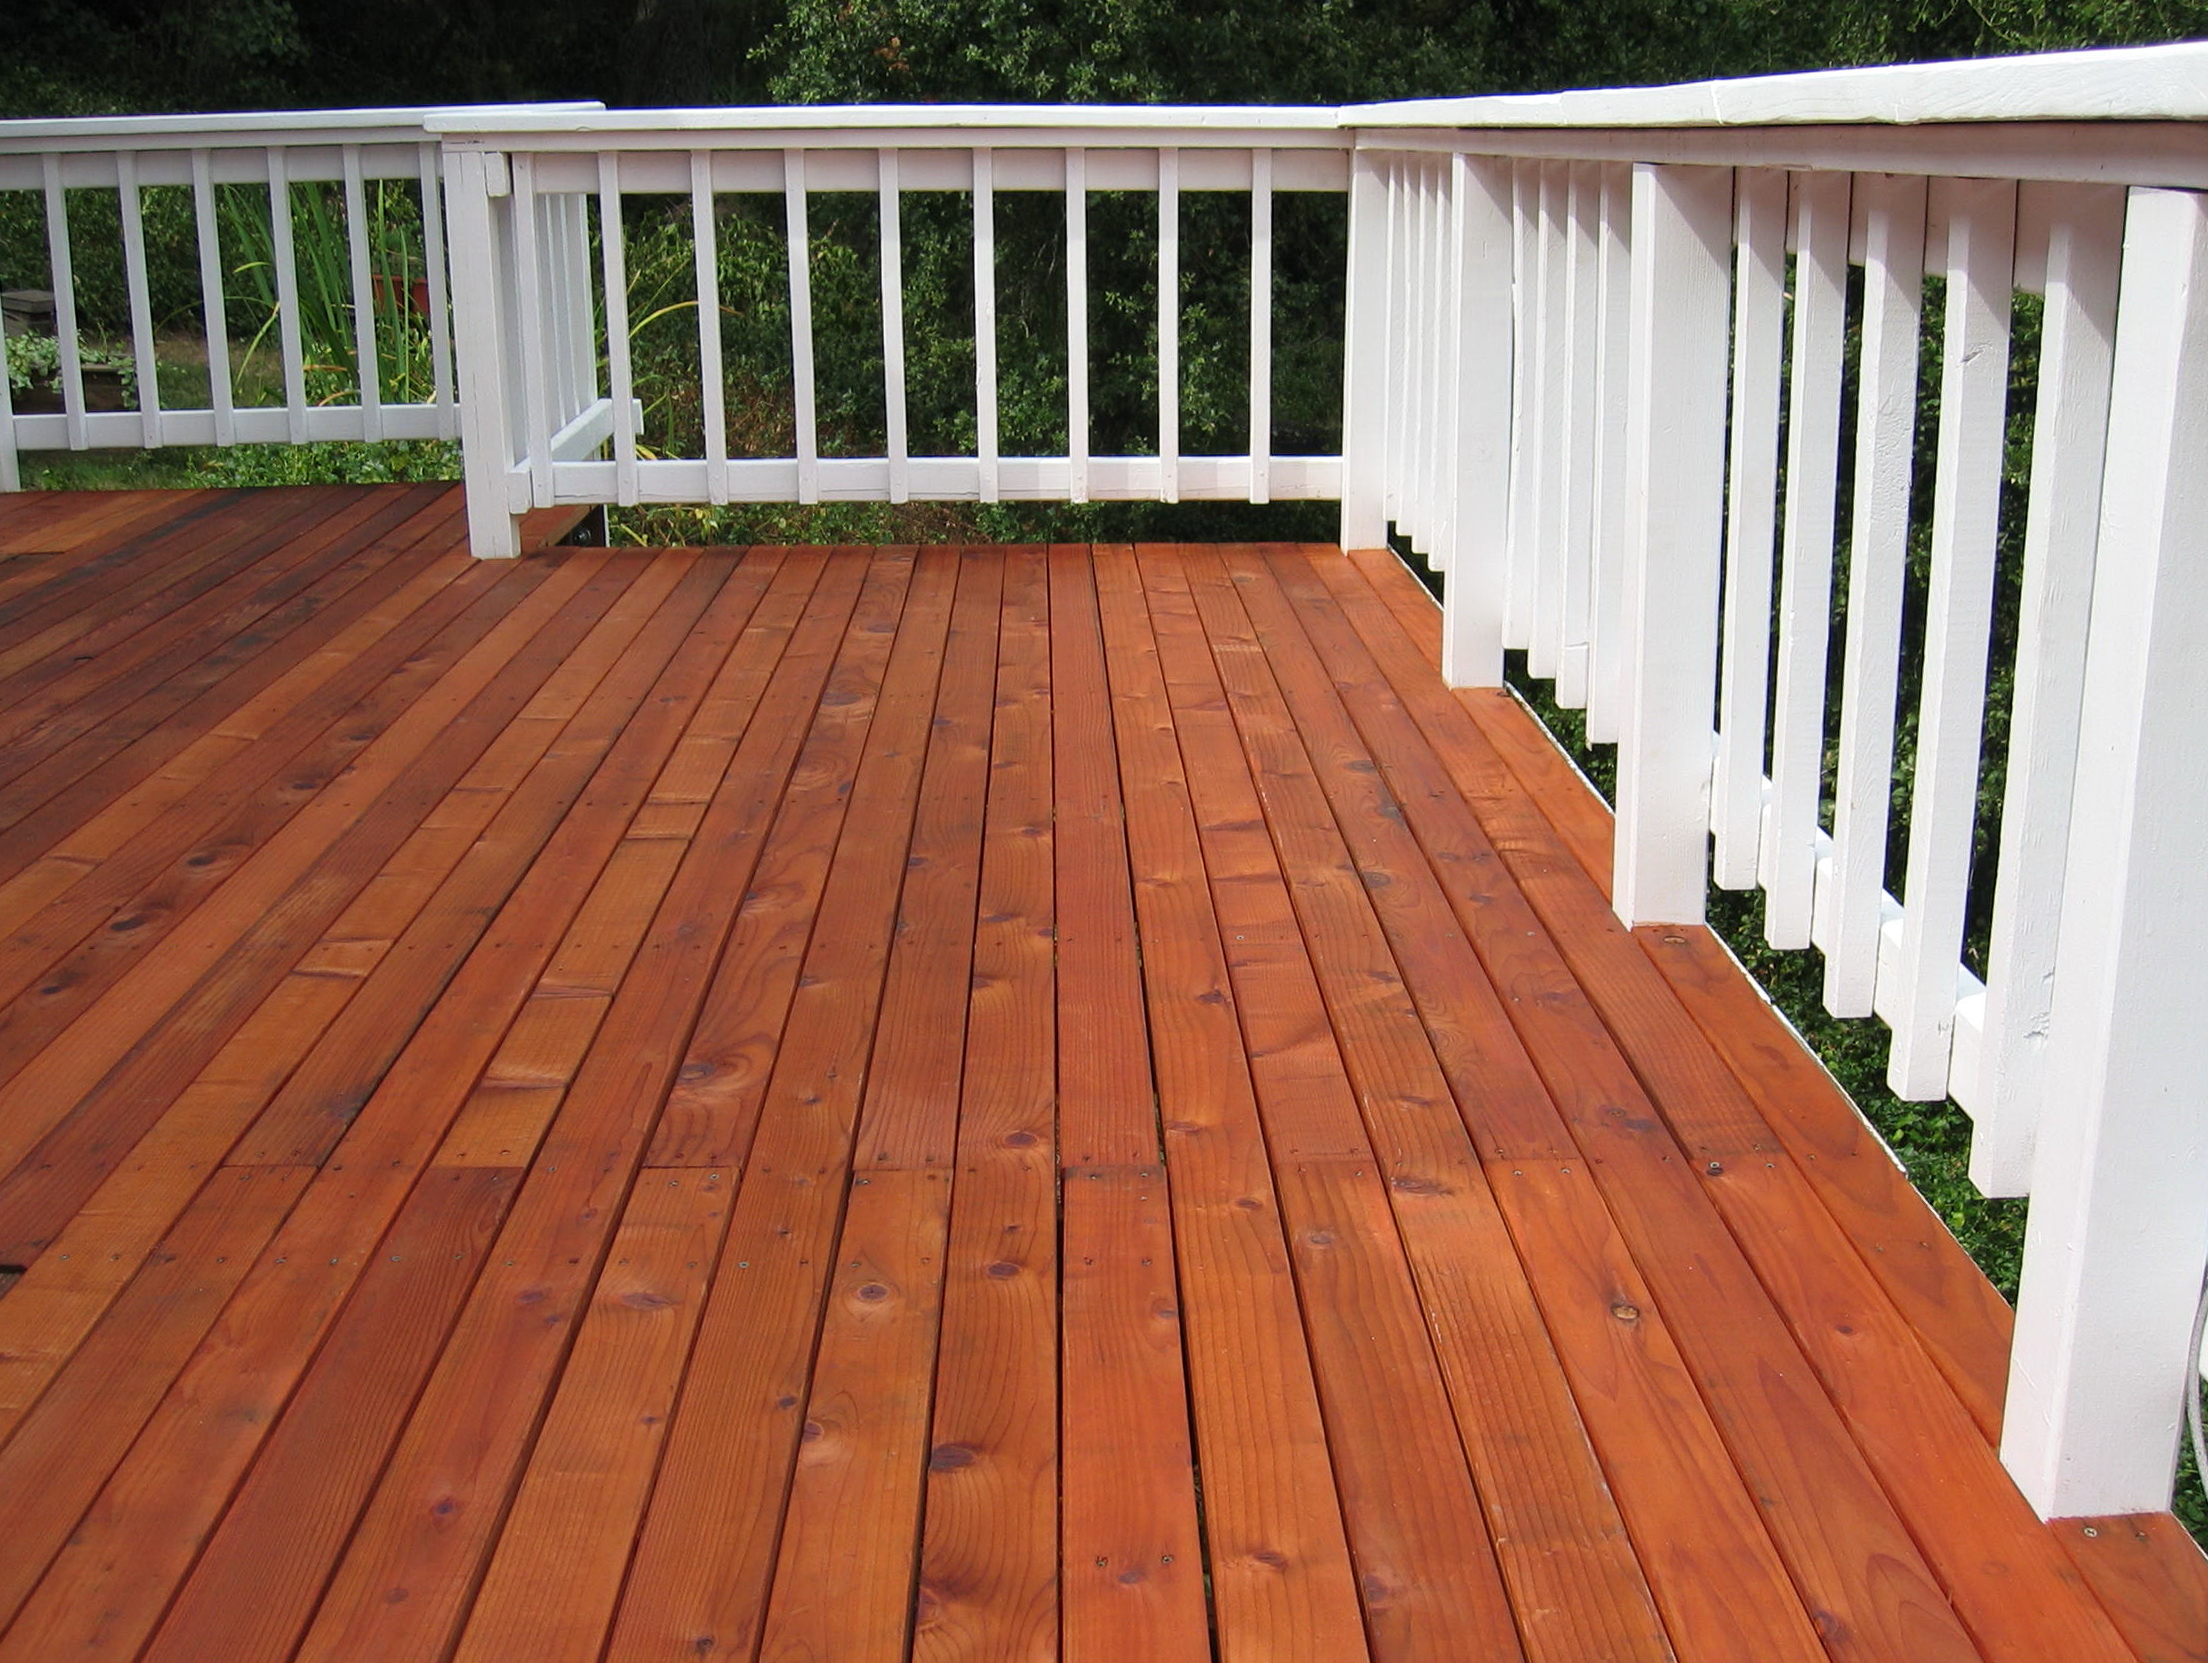 Wood Deck Stains Pressure Treated Decks Ideas within proportions 2208 X 1663